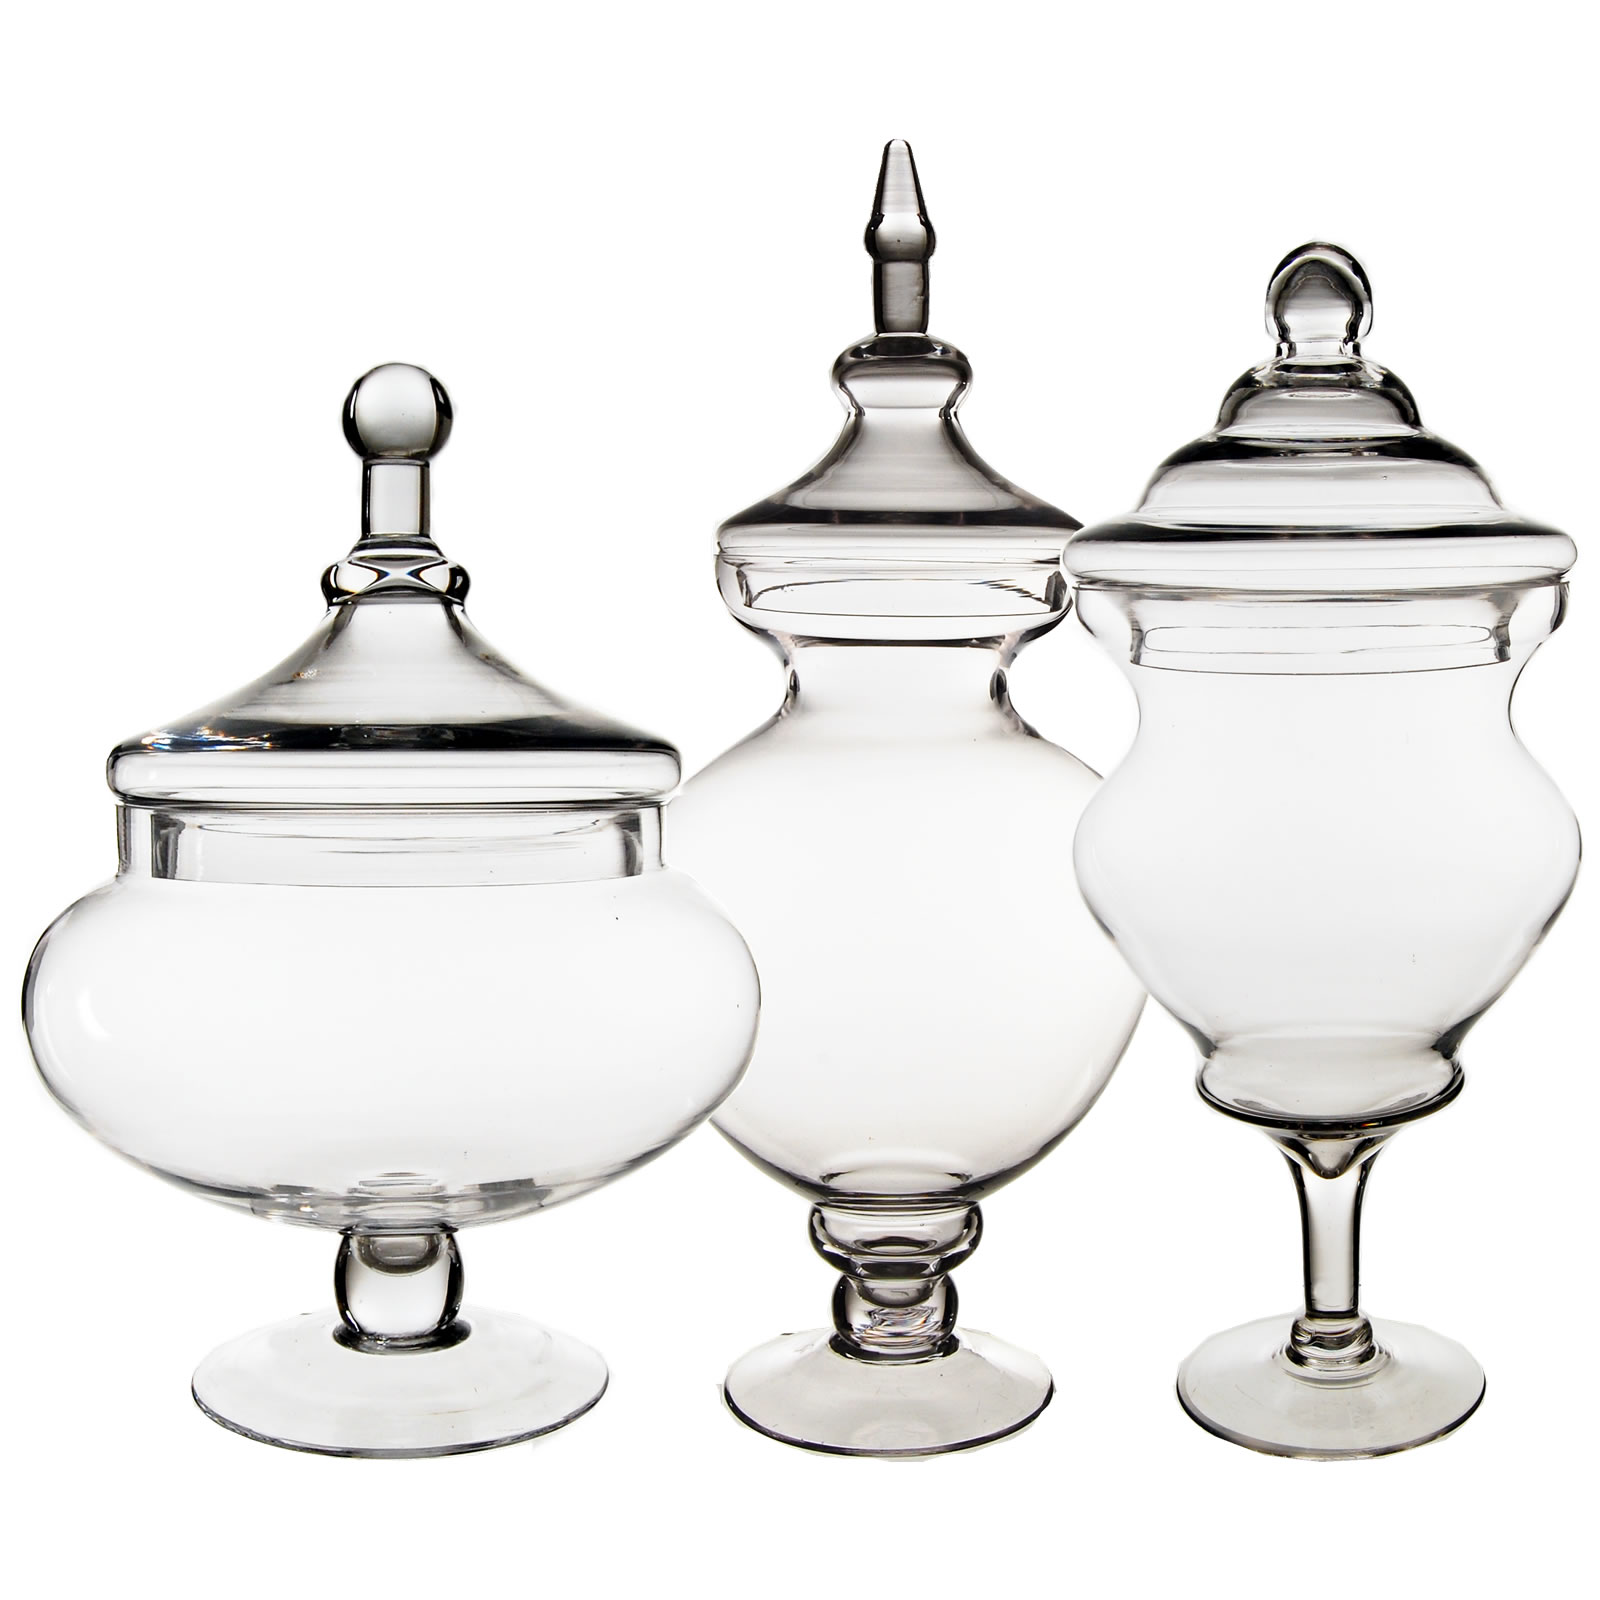 "Glass Apothecary Jars Set of 3, H-21.5, 15"", 16.25"""